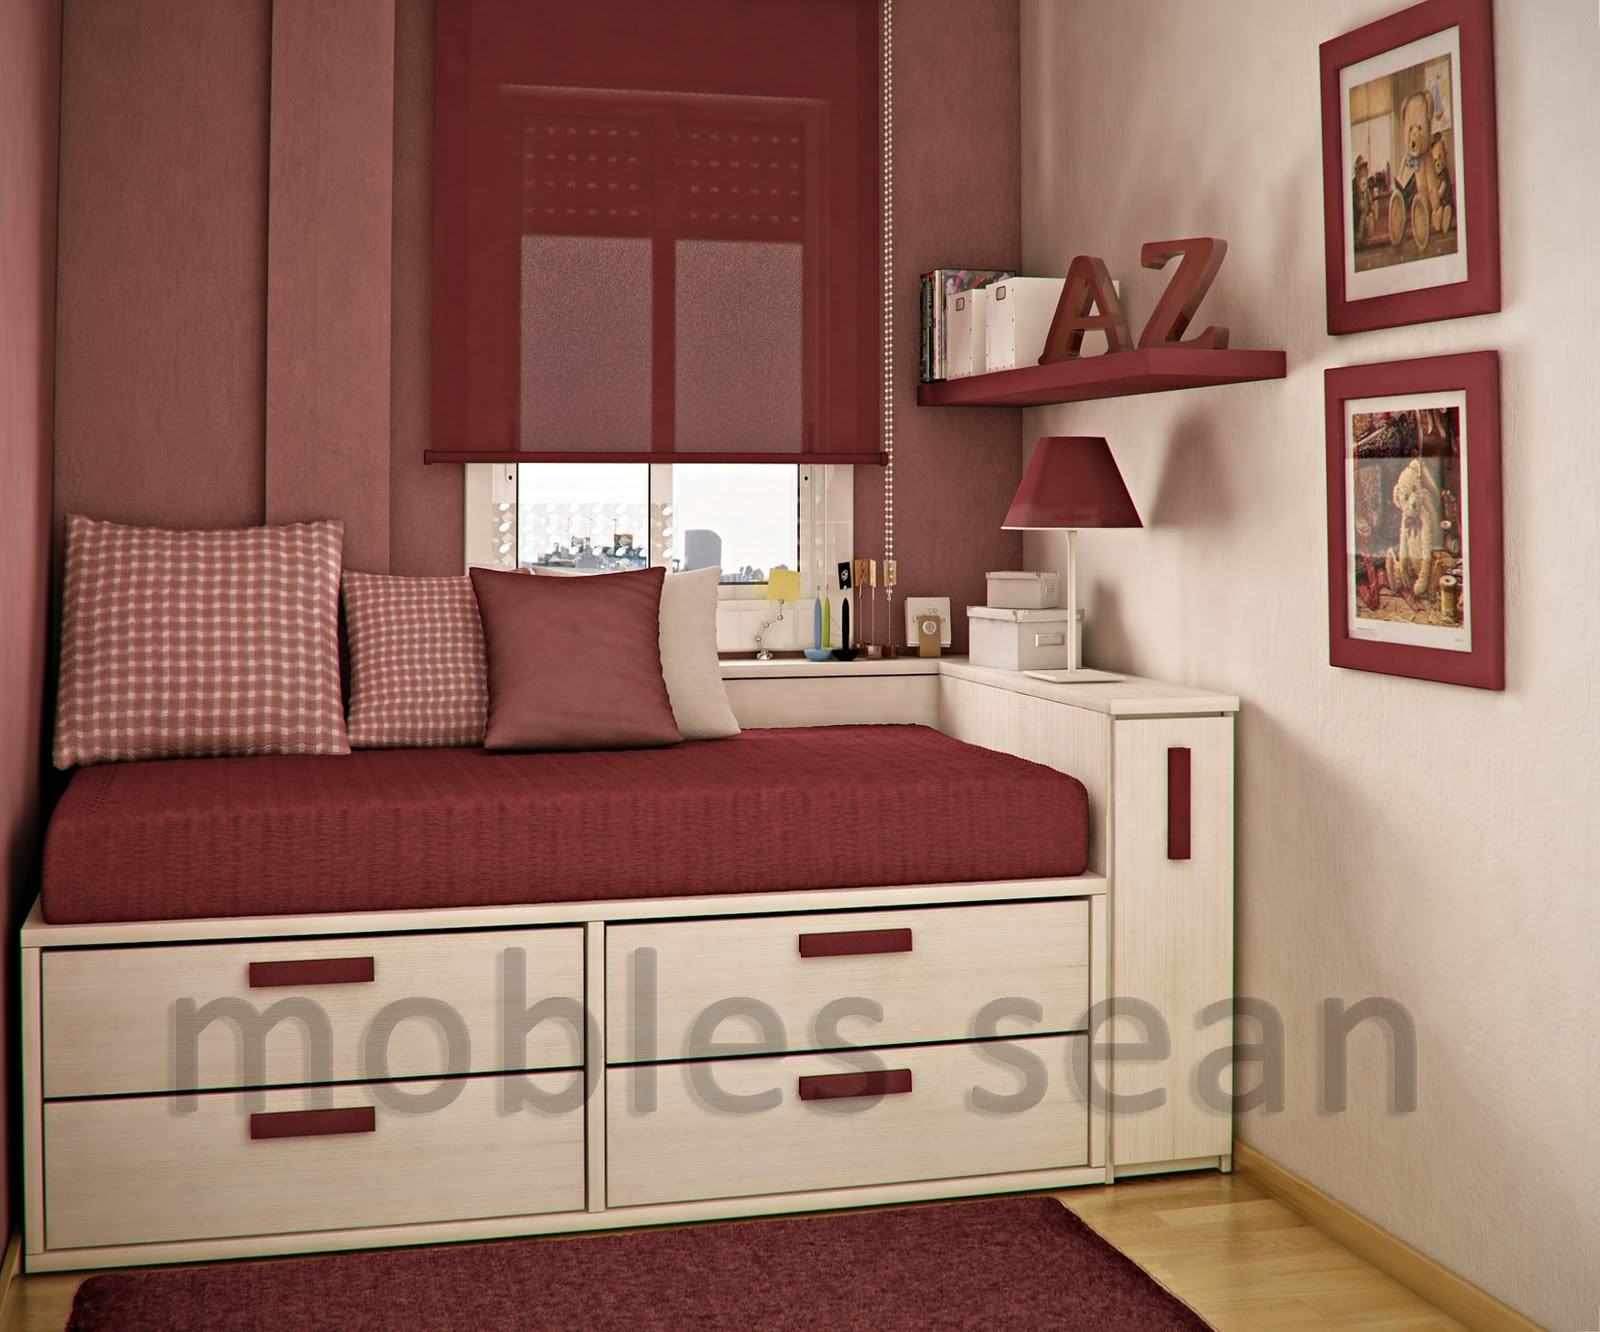 Tremendous Space Saving Designs For Small Kids Rooms Largest Home Design Picture Inspirations Pitcheantrous